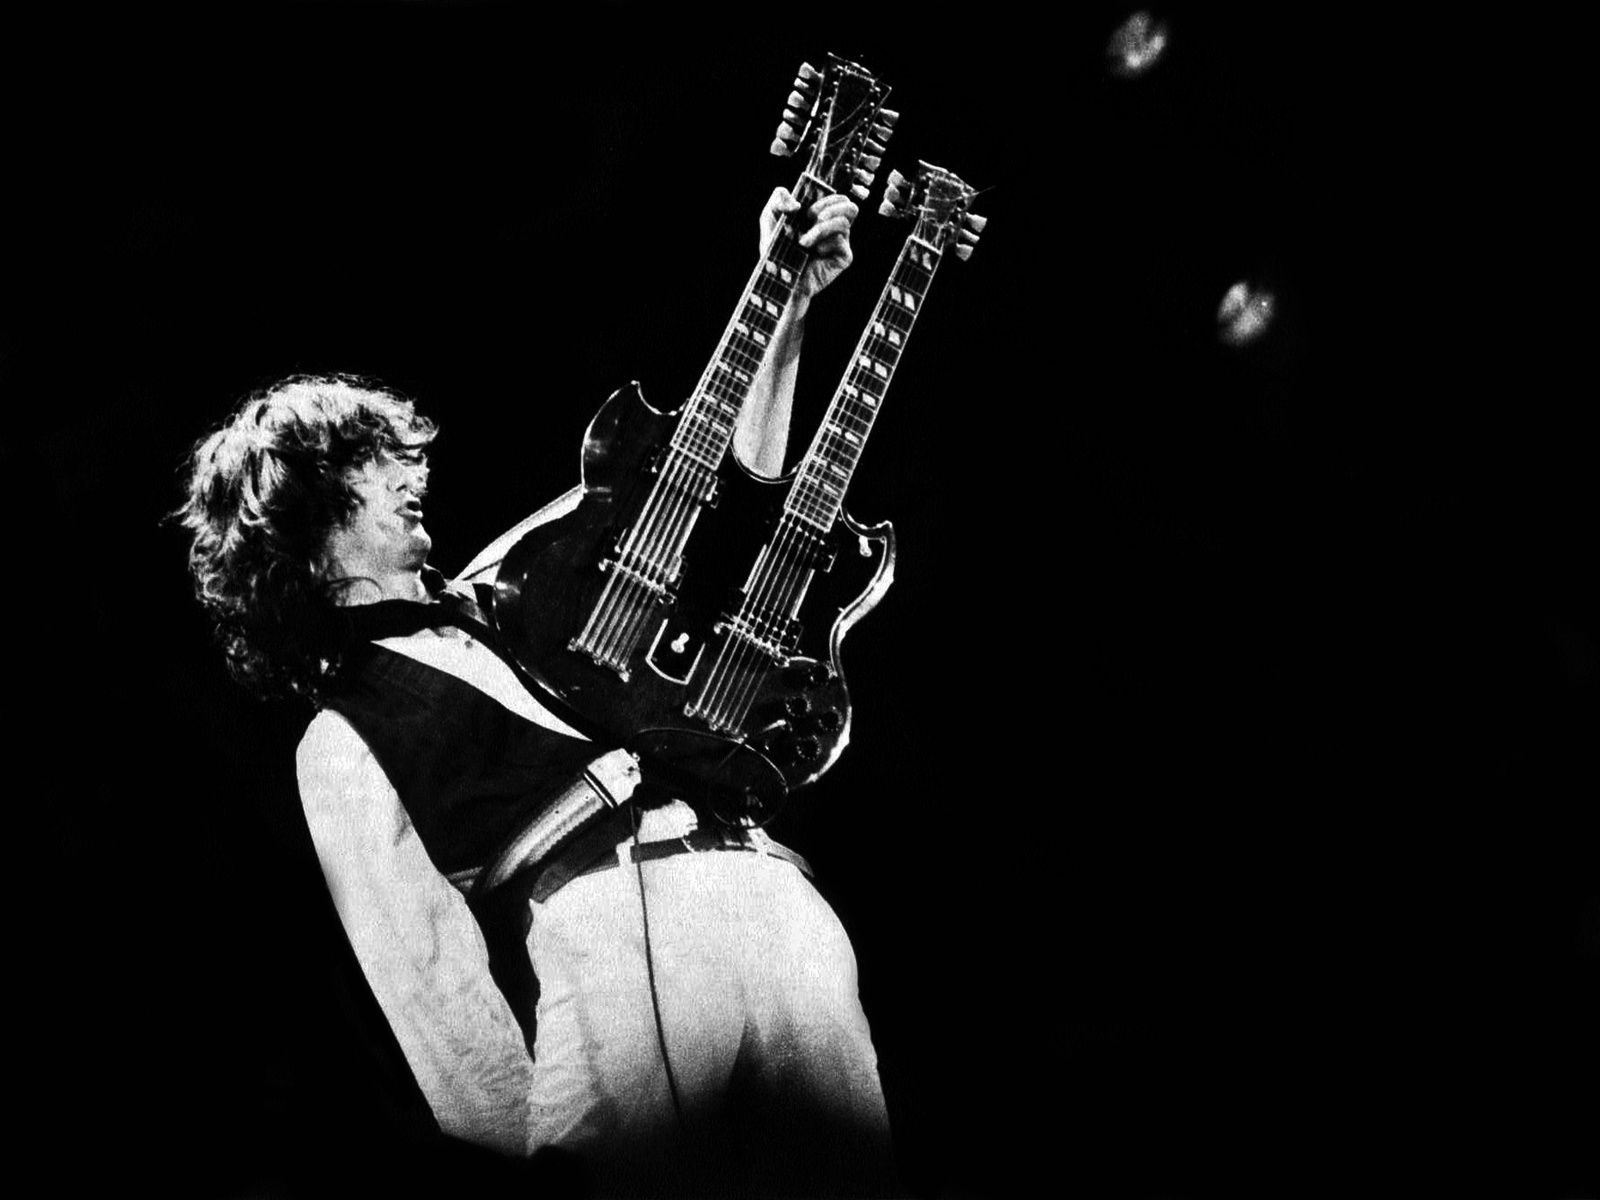 Jimmy Page, 1983 - A.R.M.S. Concert Oakland, Ca